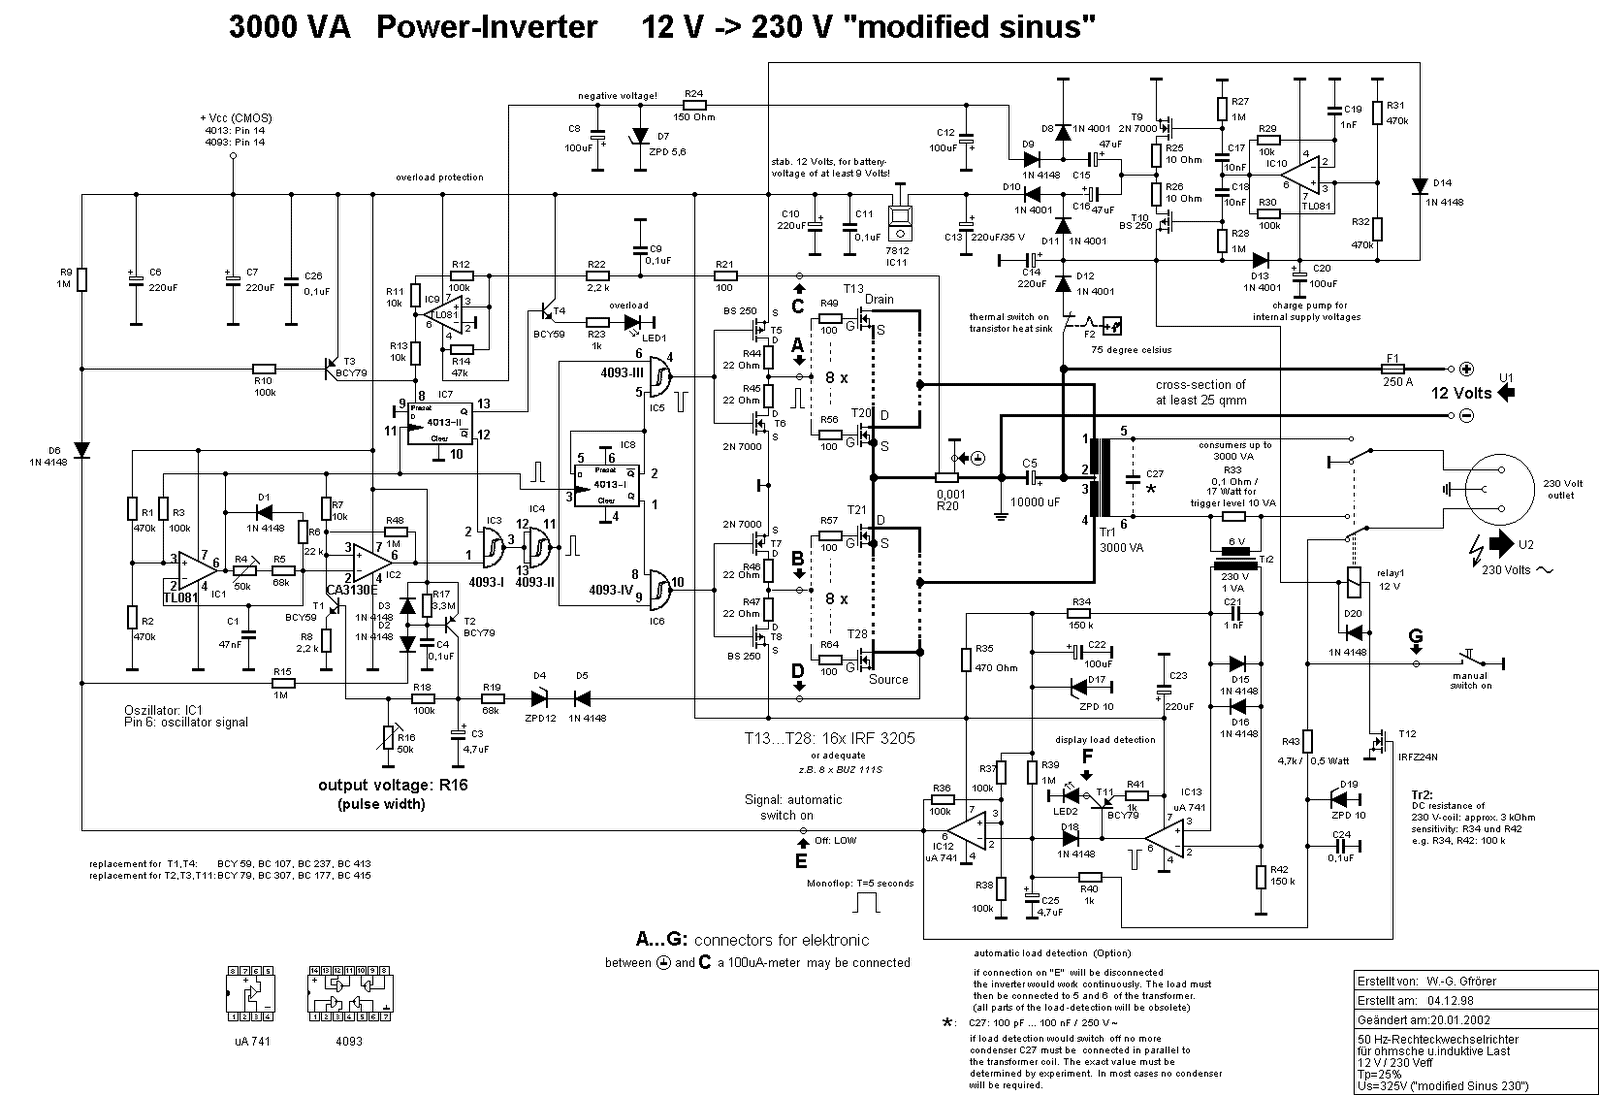 Venturi Water Valve Diagram furthermore 792qc9 in addition Watch also Symbols Of Electrical  ponents further David Brown 990 Wiring Diagram. on wiring diagram symbols